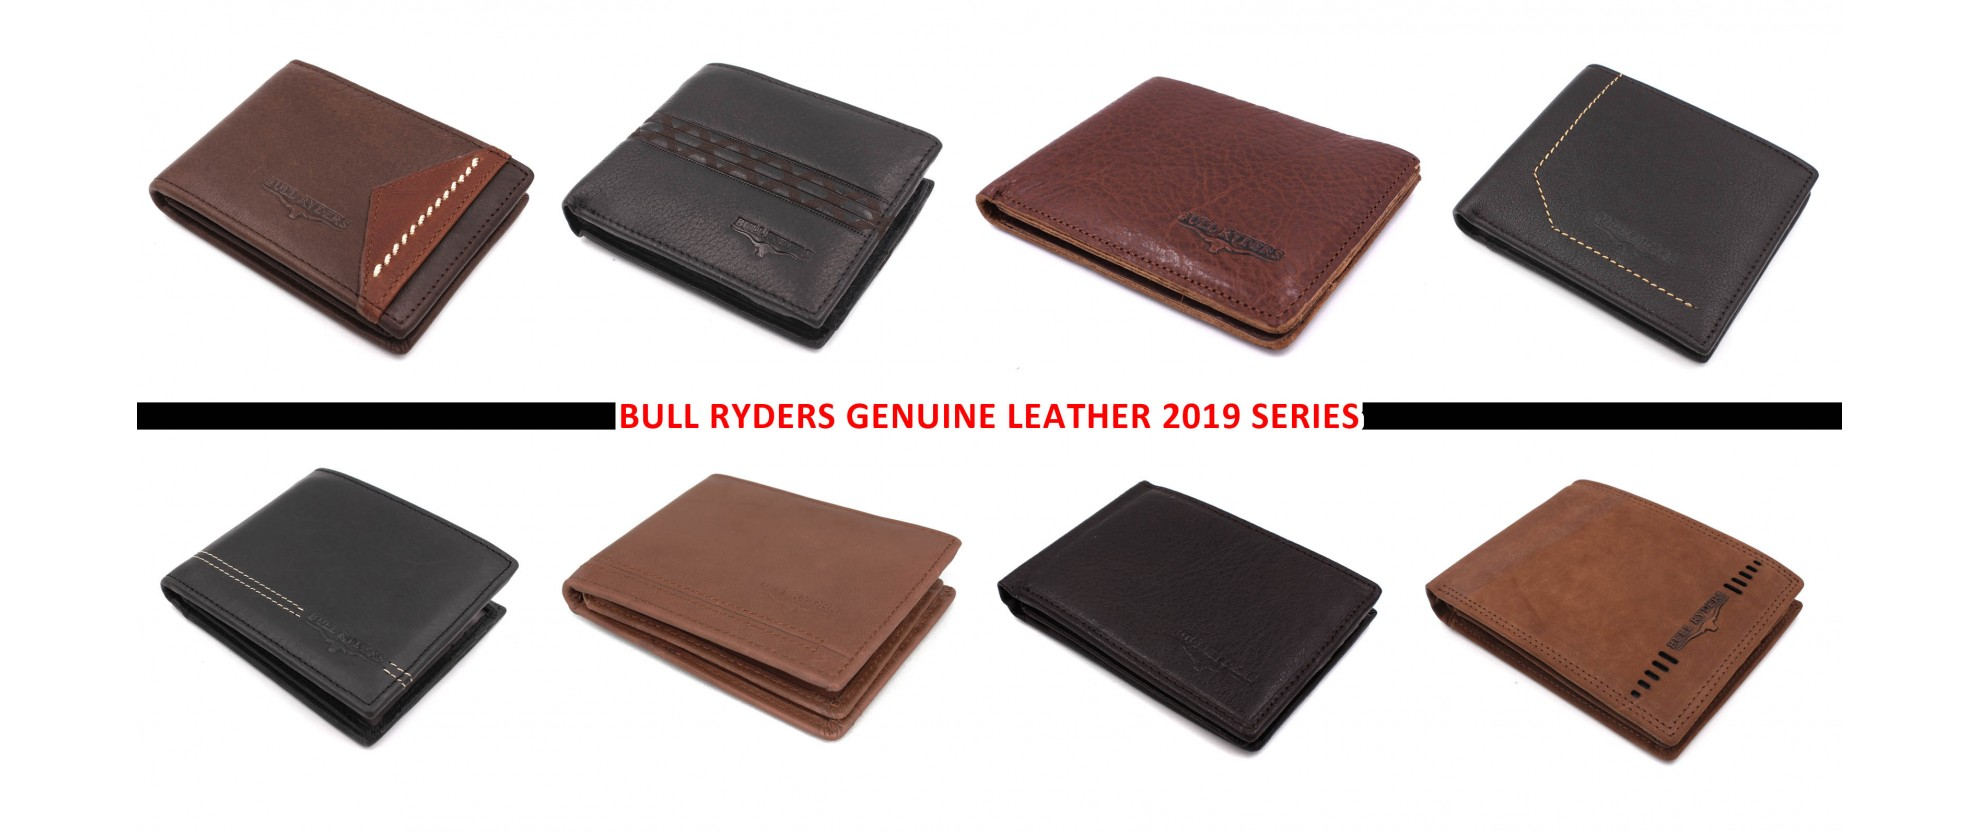 BULL RYDERS COLLECTION